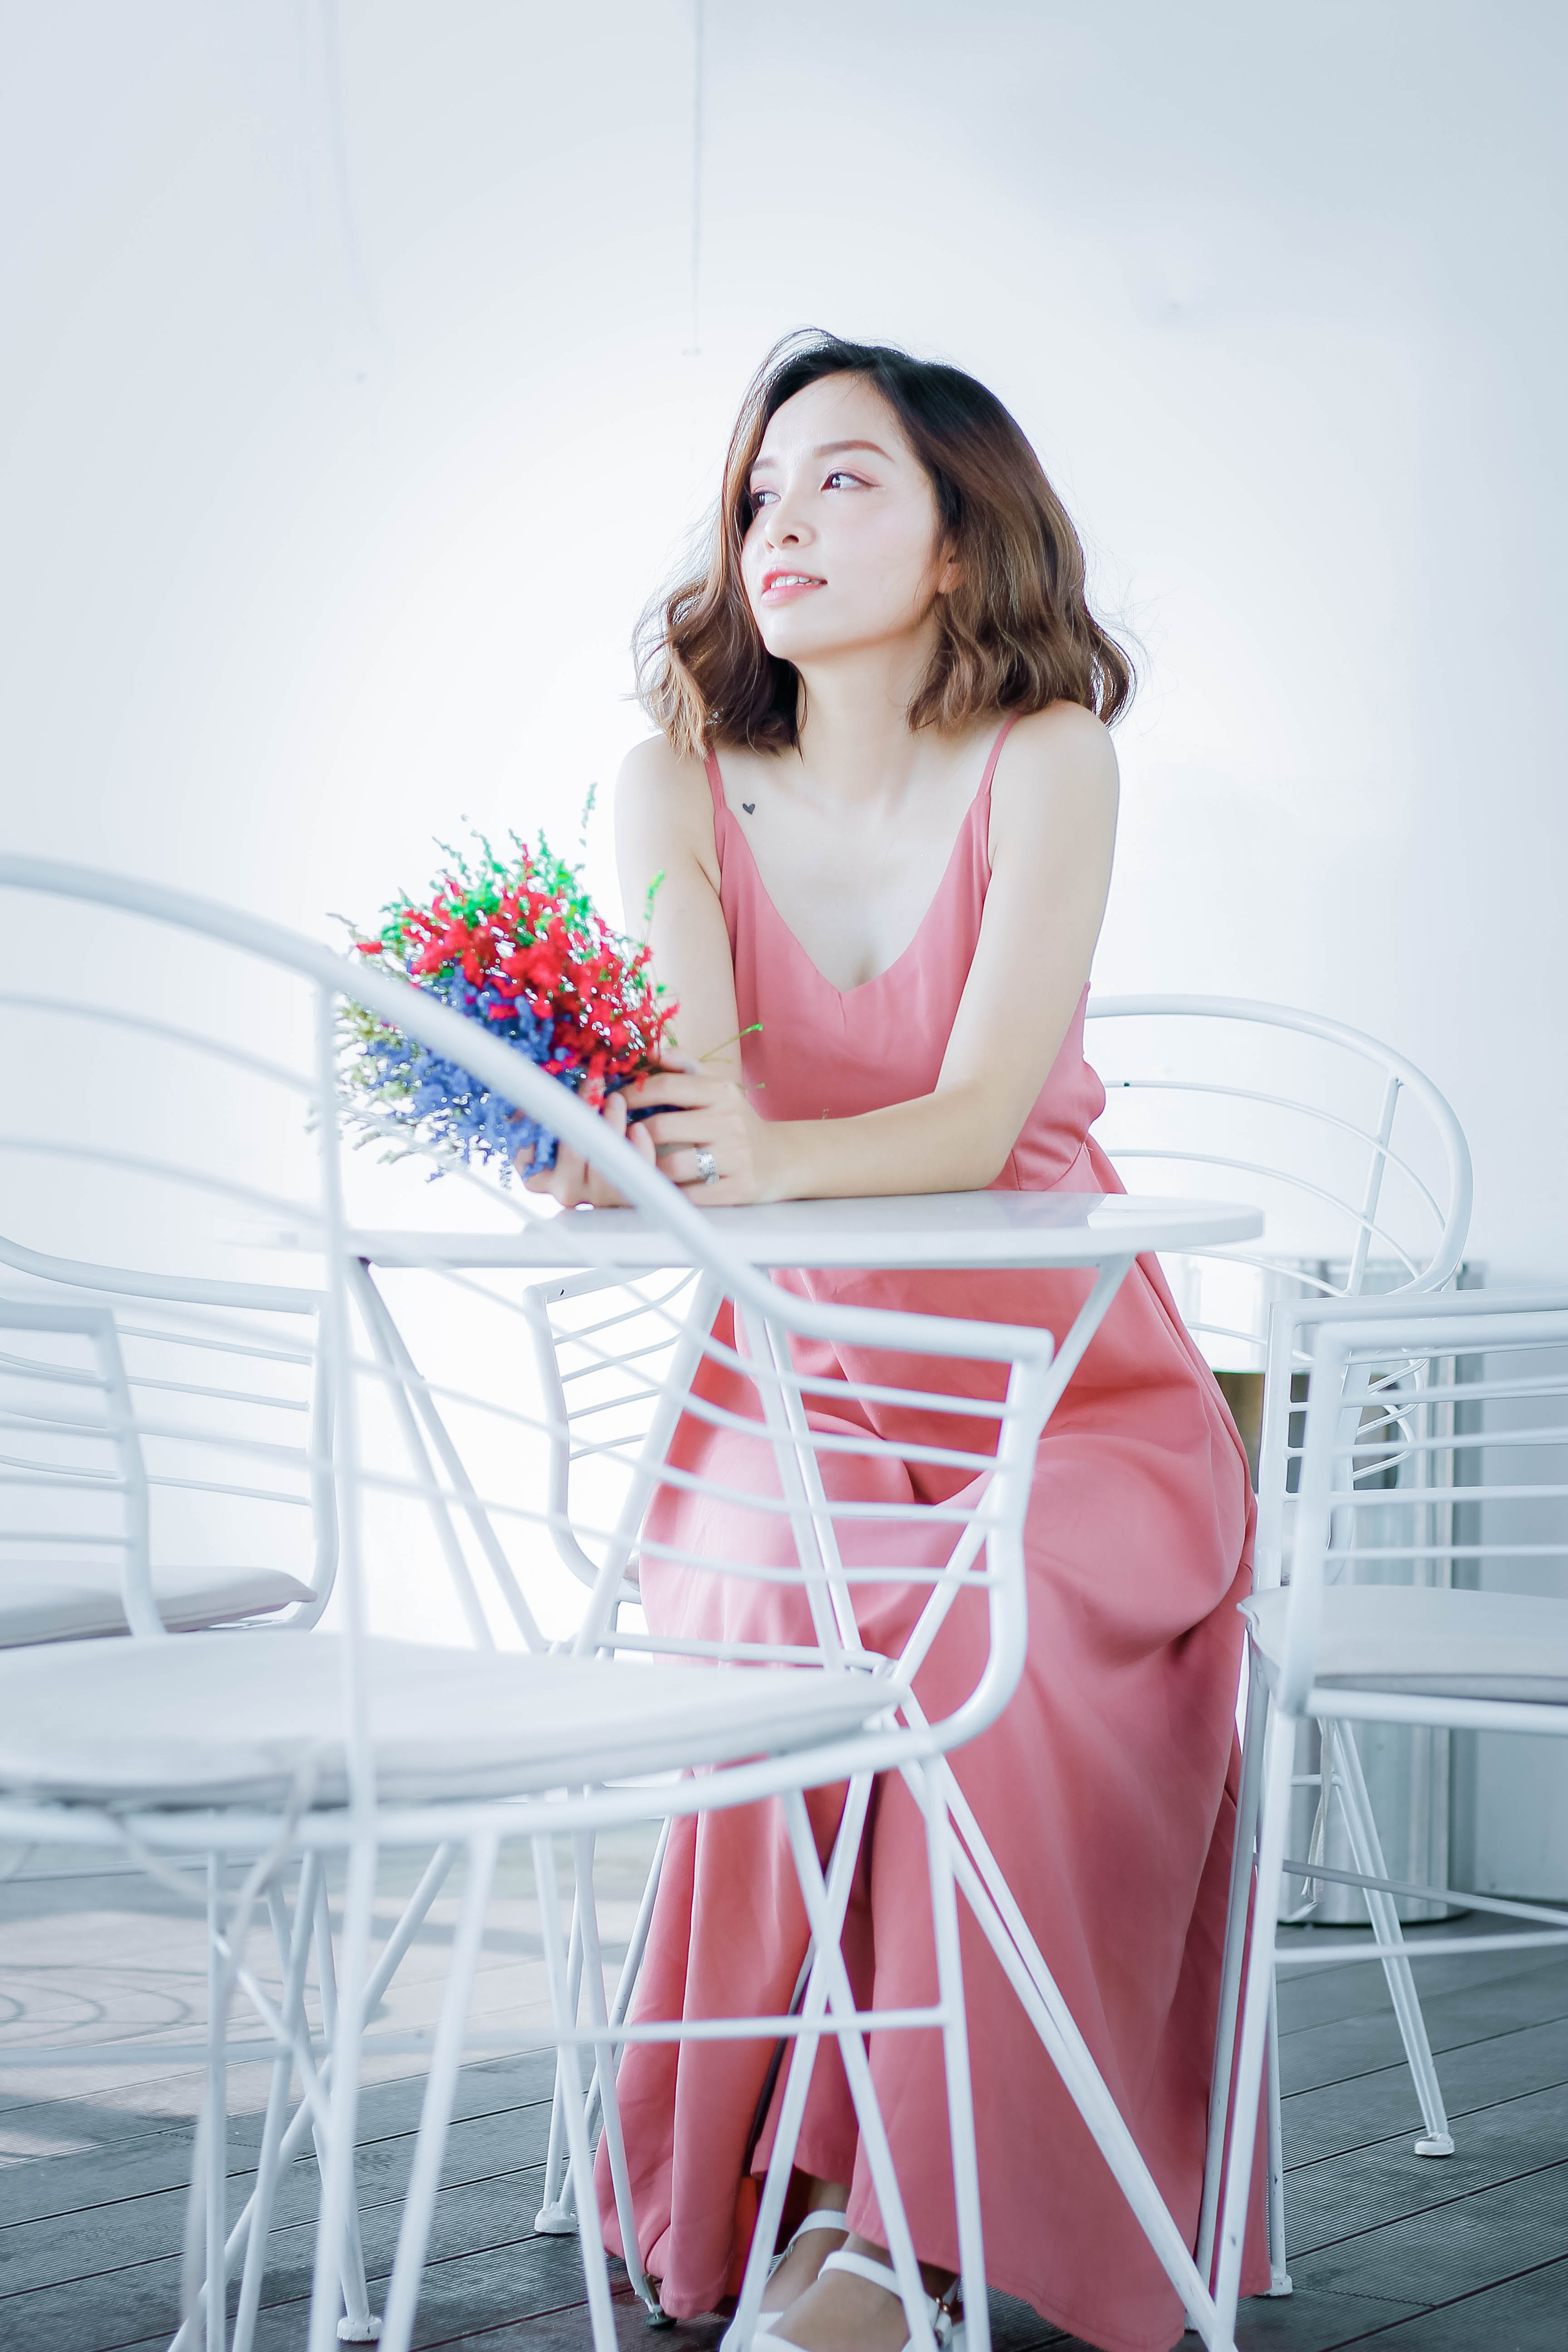 Woman in Pink Dress Sitting on Chair